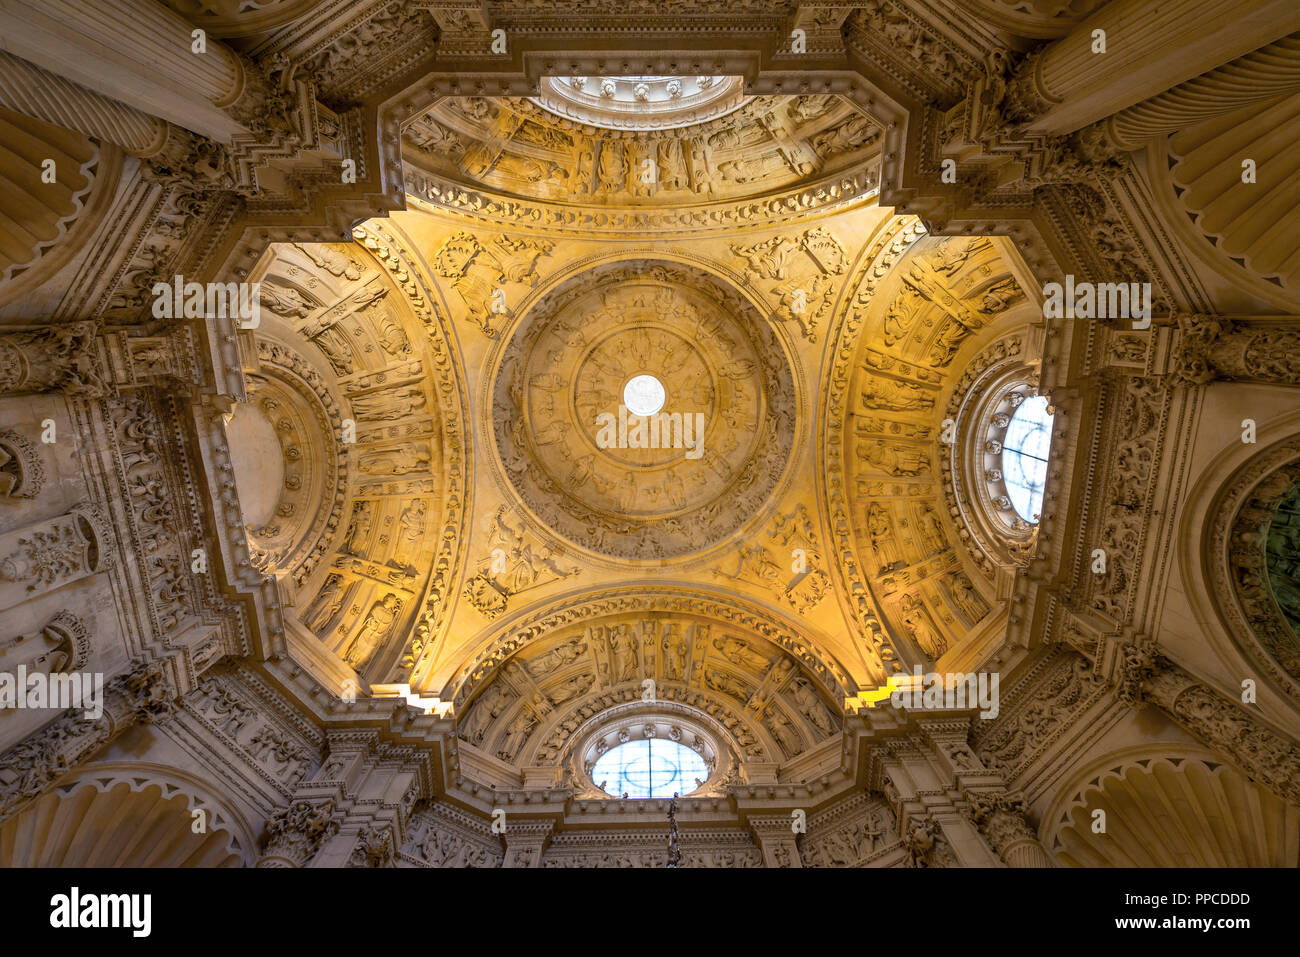 Ornate ceiling vault in the aisle of the Cathedral of Seville, Catedral de Santa Maria de la Sede, Seville, Andalusia, Spain - Stock Image